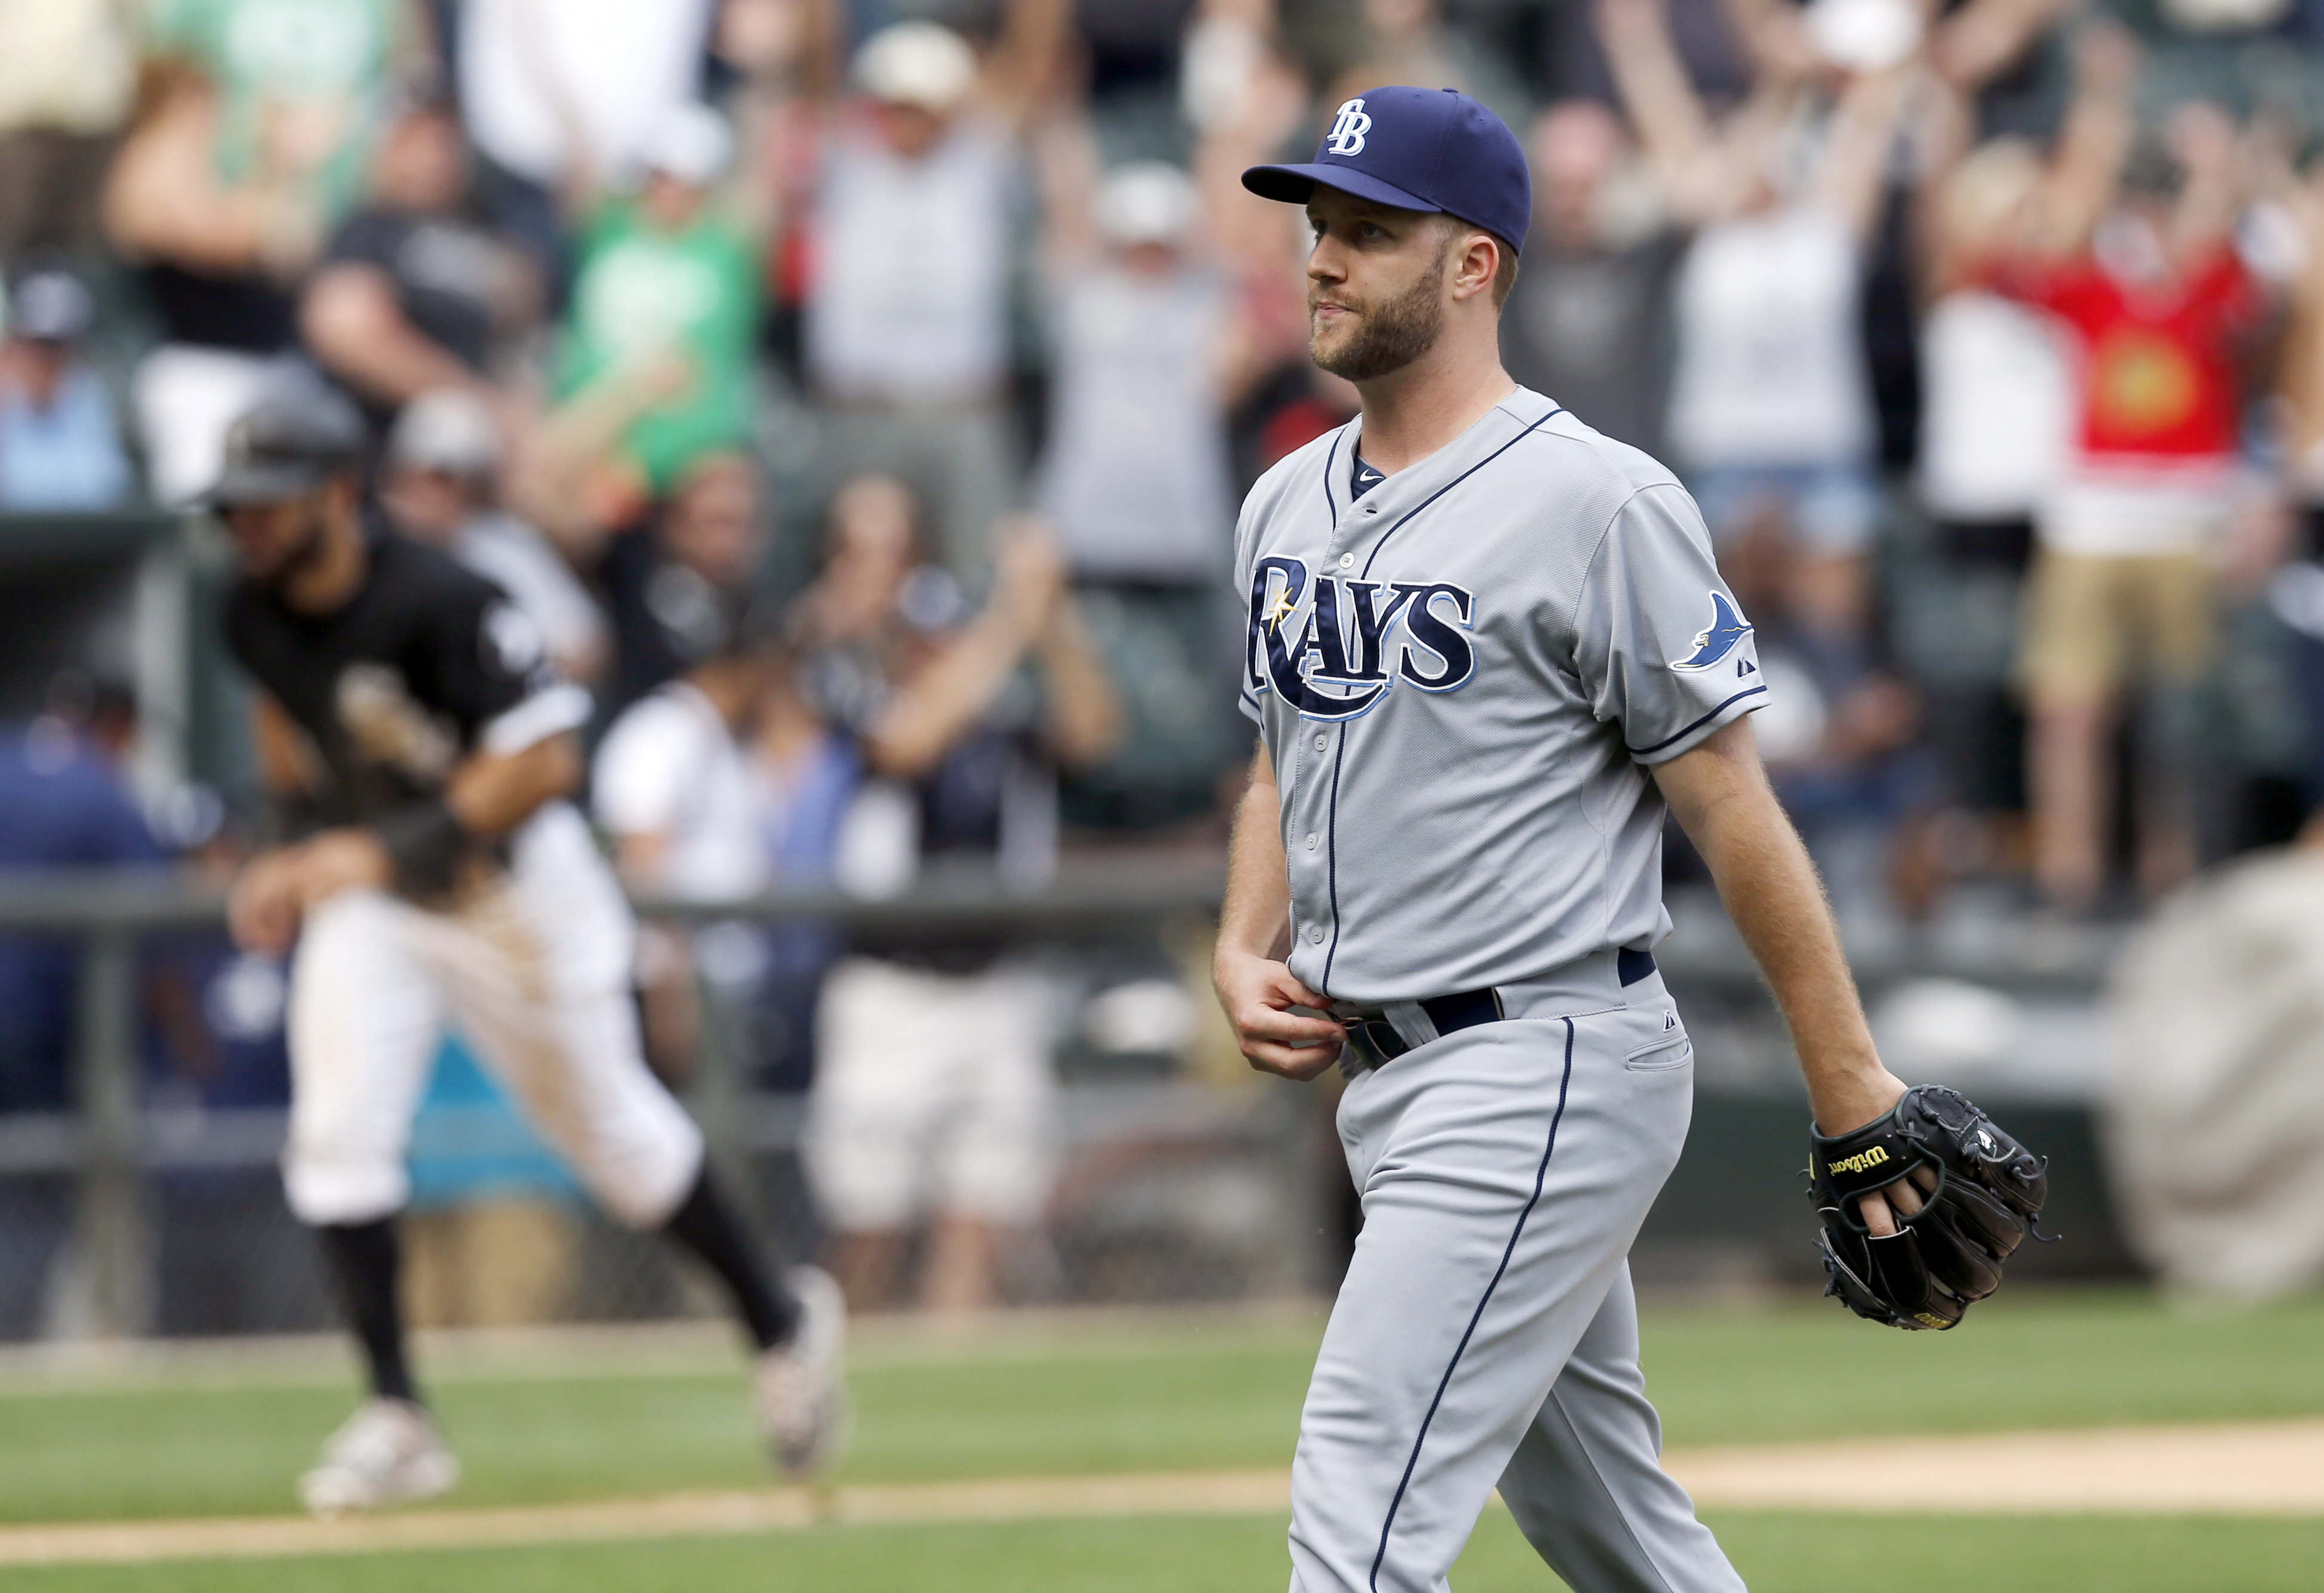 Tampa Bay Rays relief pitcher Brad Boxberger walks to the dugout after giving up a bases loaded walk to Chicago White Sox's Avisail Garcia, scoring Adam Eaton, left, giving the White Sox a 6-5 win in the 10th inning of a baseball game, Wednesday, Aug. 5,